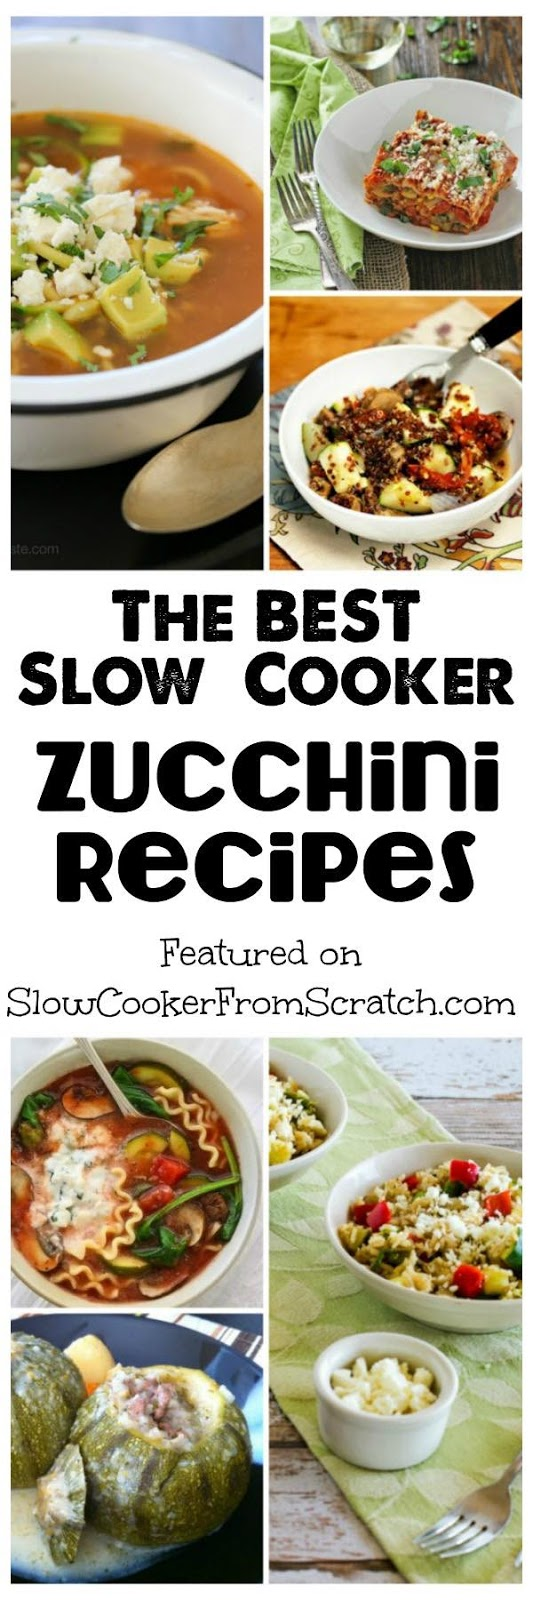 The BEST Slow Cooker Zucchini Recipes - Slow Cooker or ...